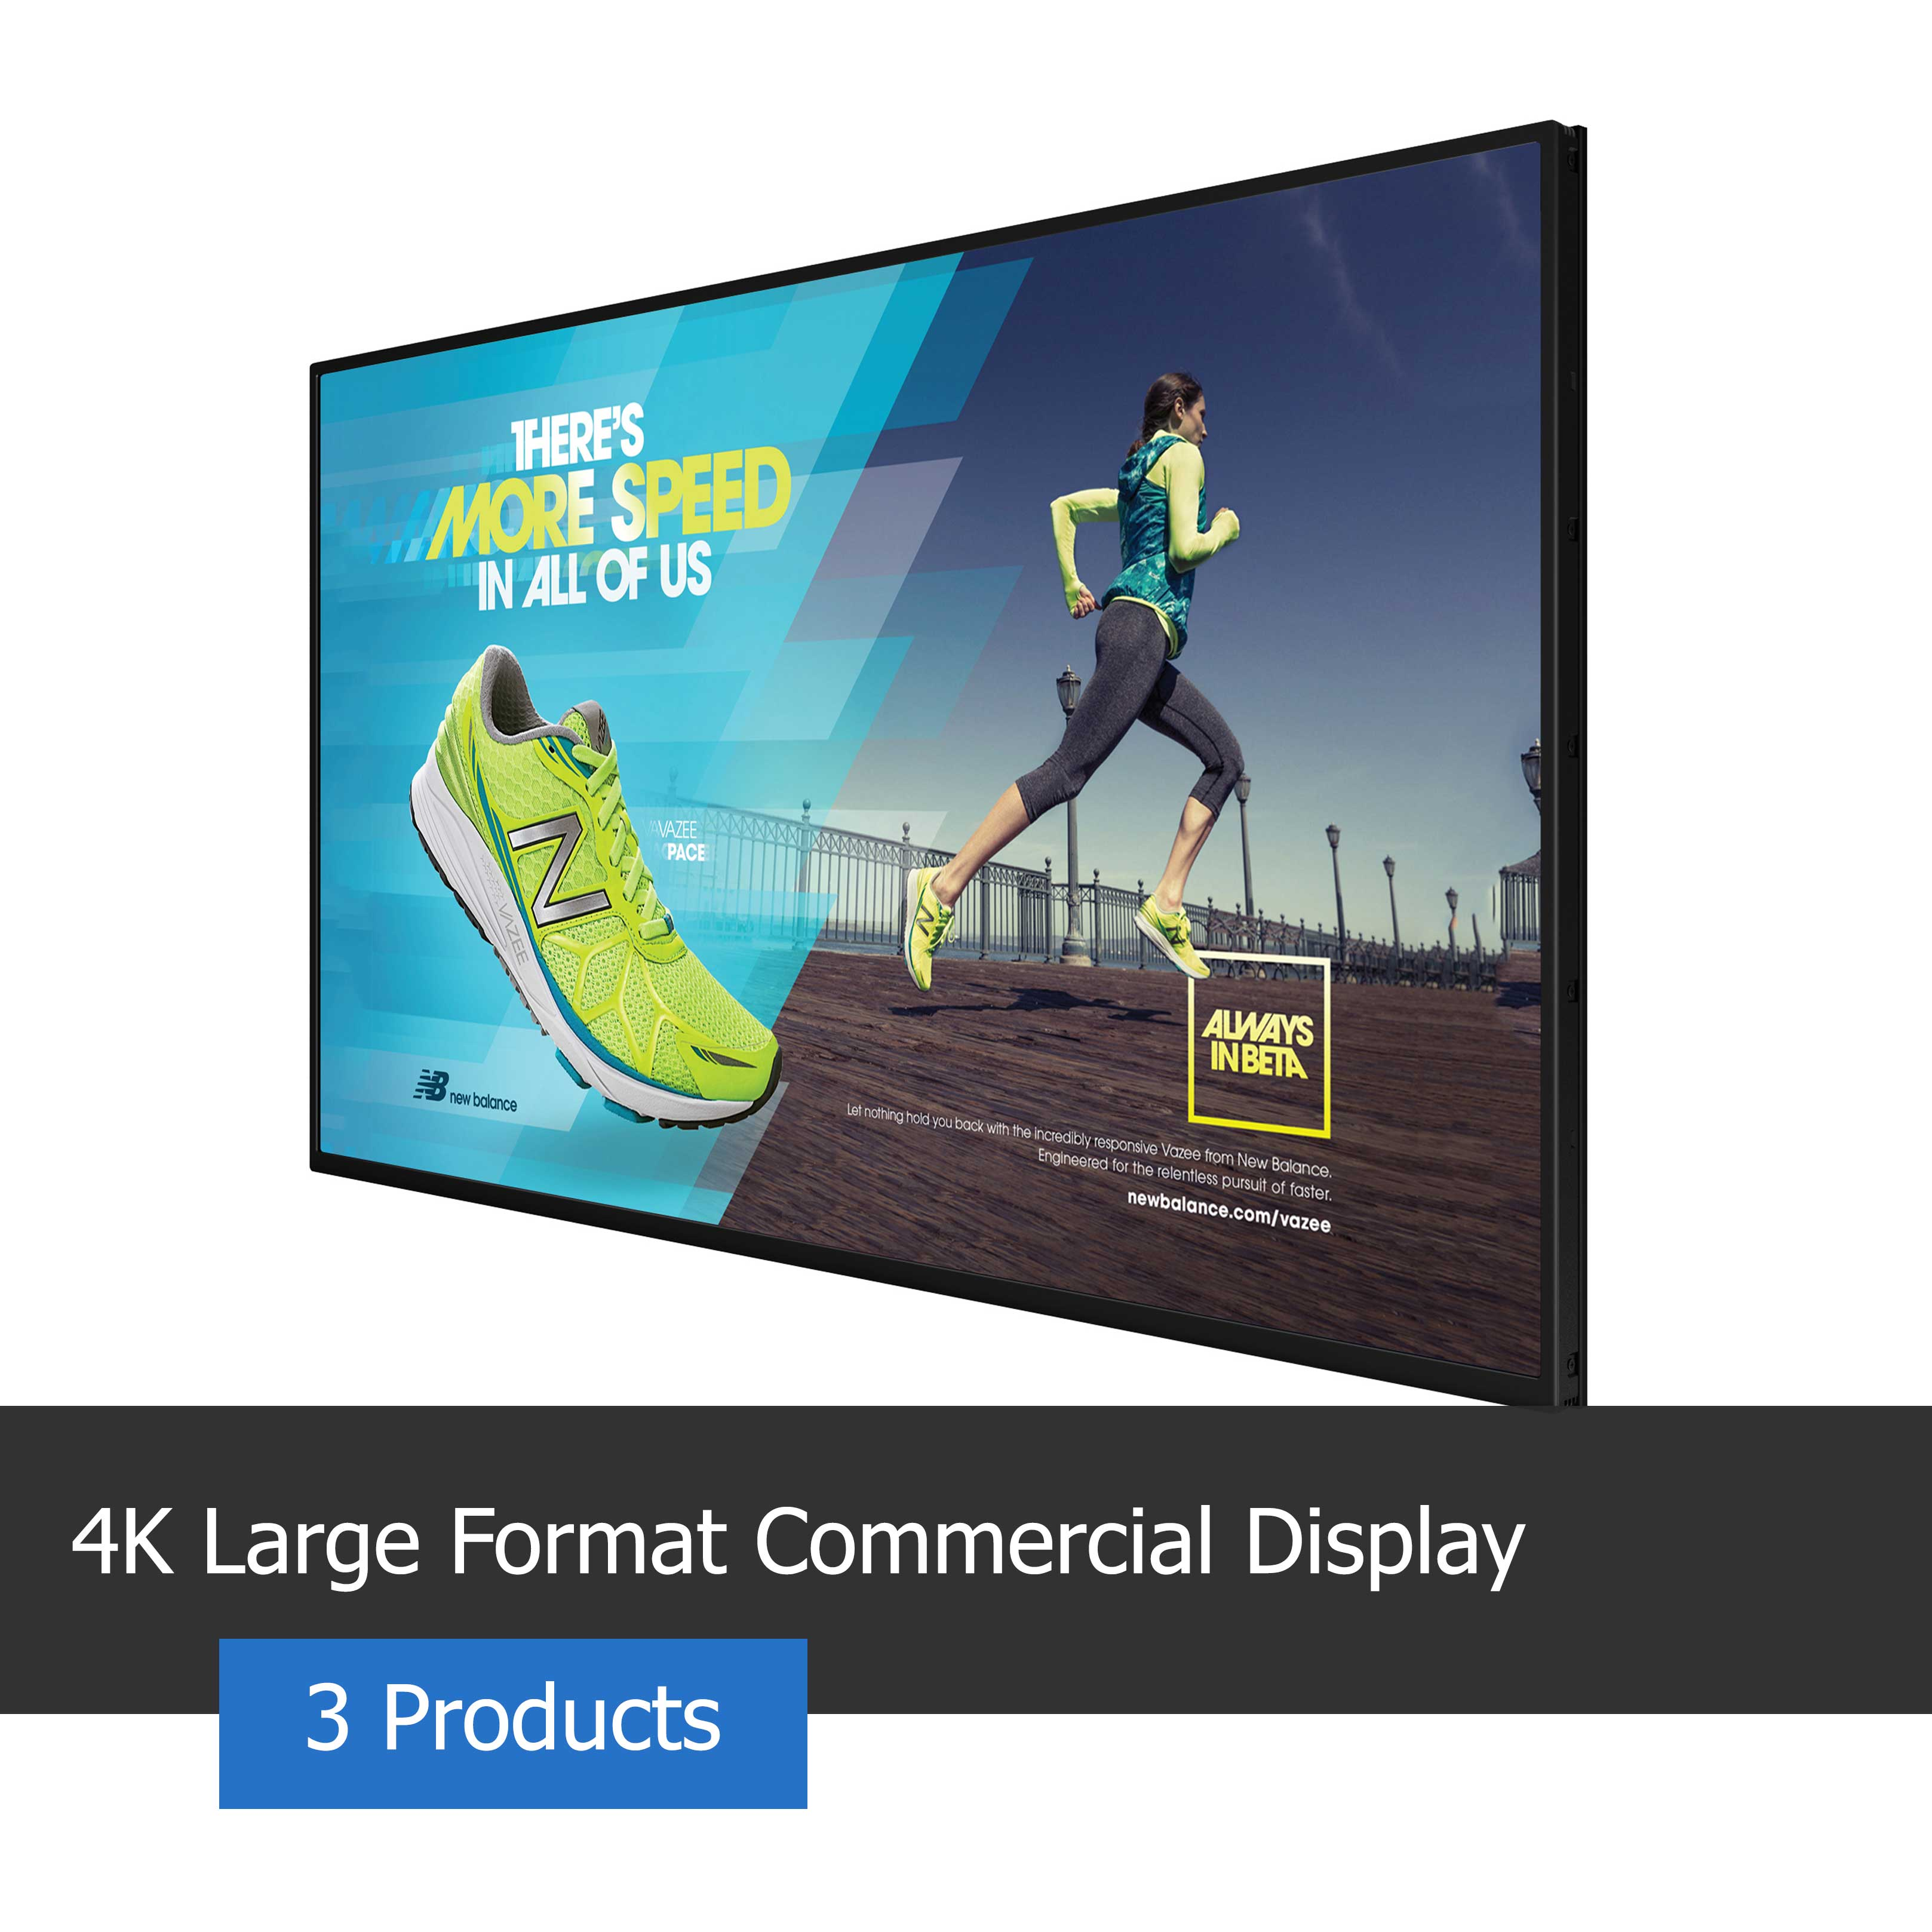 4K Large Format Commercial Display